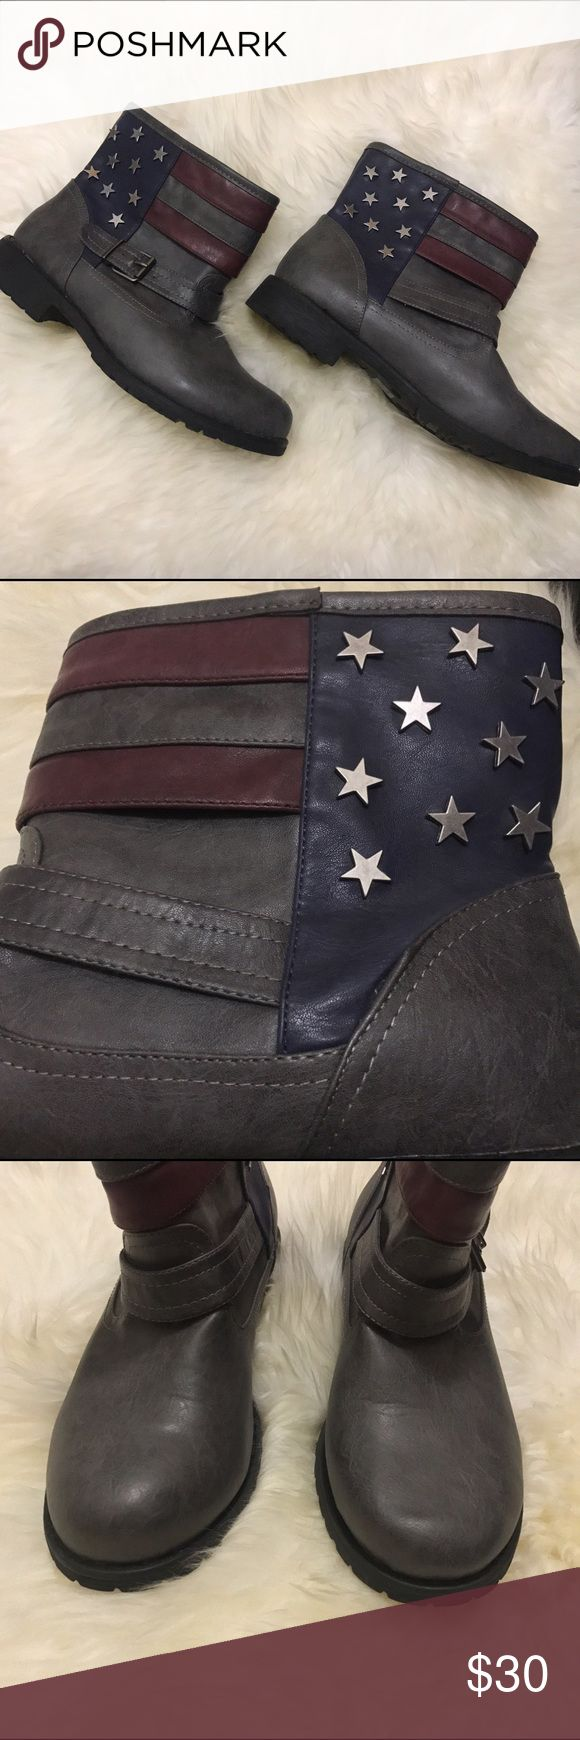 American Flag Moto Booties NWOT Such an awesome pair of boots!! Adds a cool flair to any outfit! In perfect condition worn once! Not by Free People just listed there for exposure Free People Shoes Ankle Boots & Booties